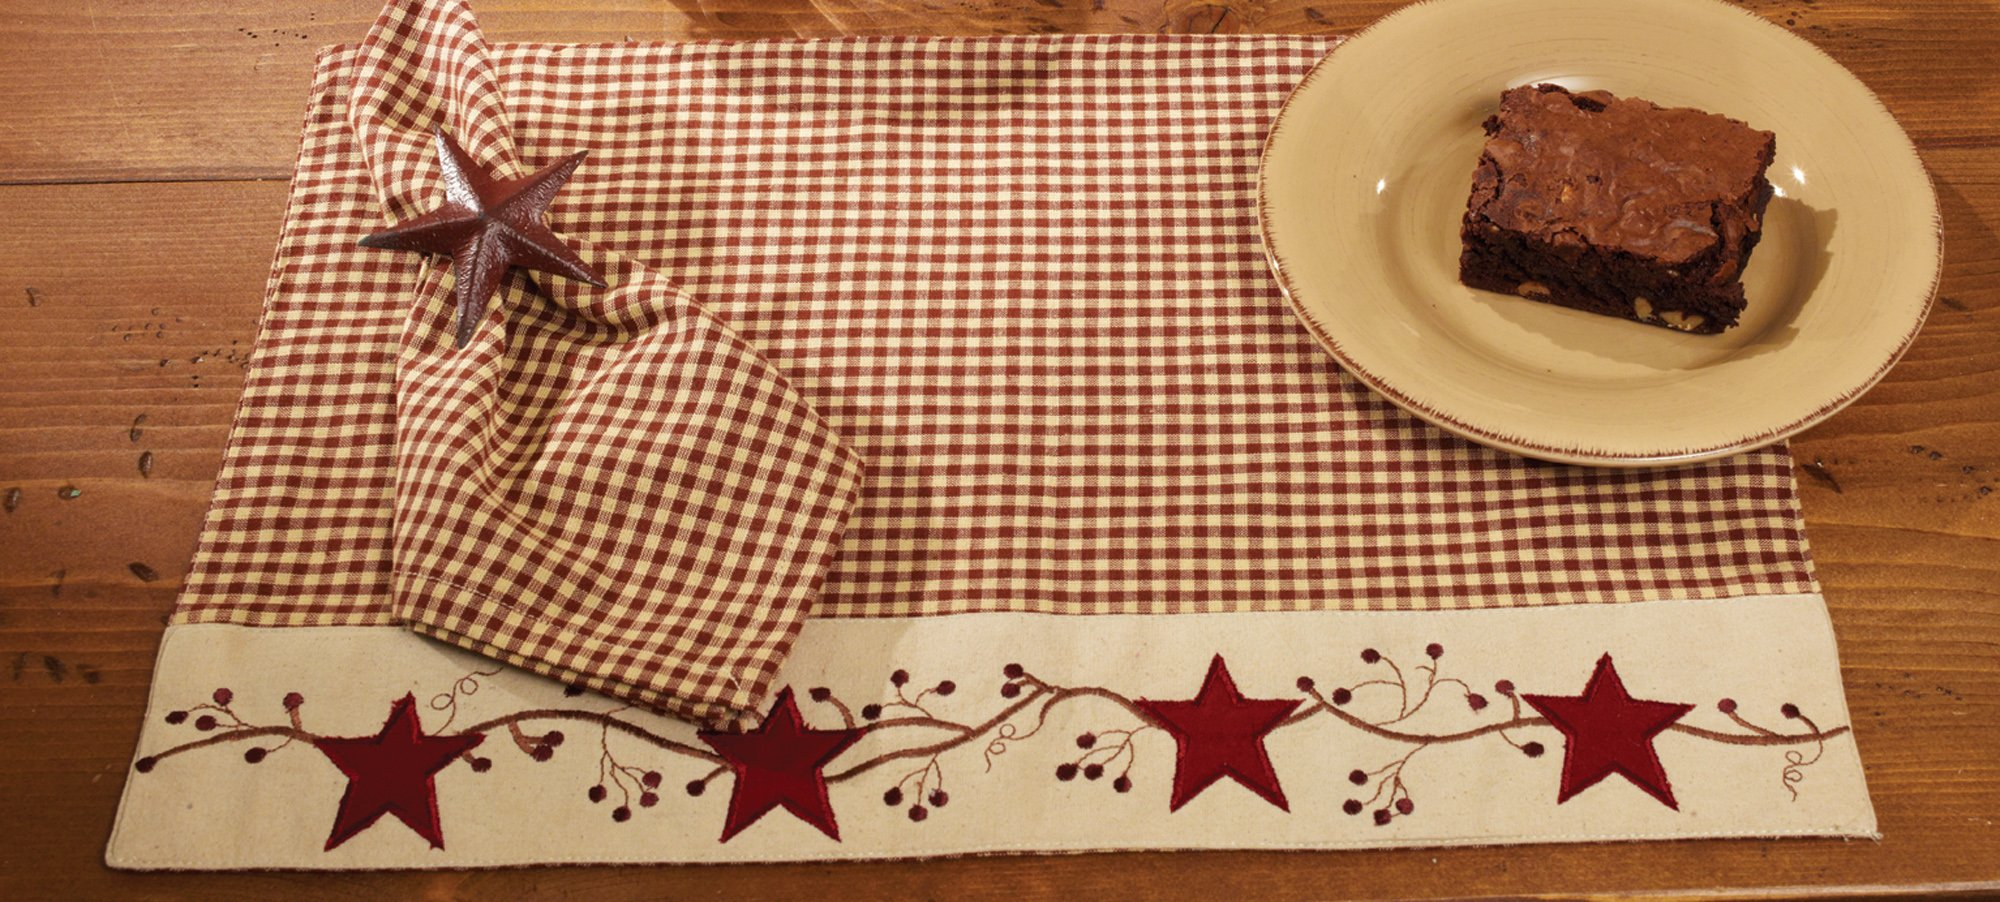 Red Barn Stars and Berries Country Check 13 x 19 Cotton Embroidered Appliqued Placemats Set of 4